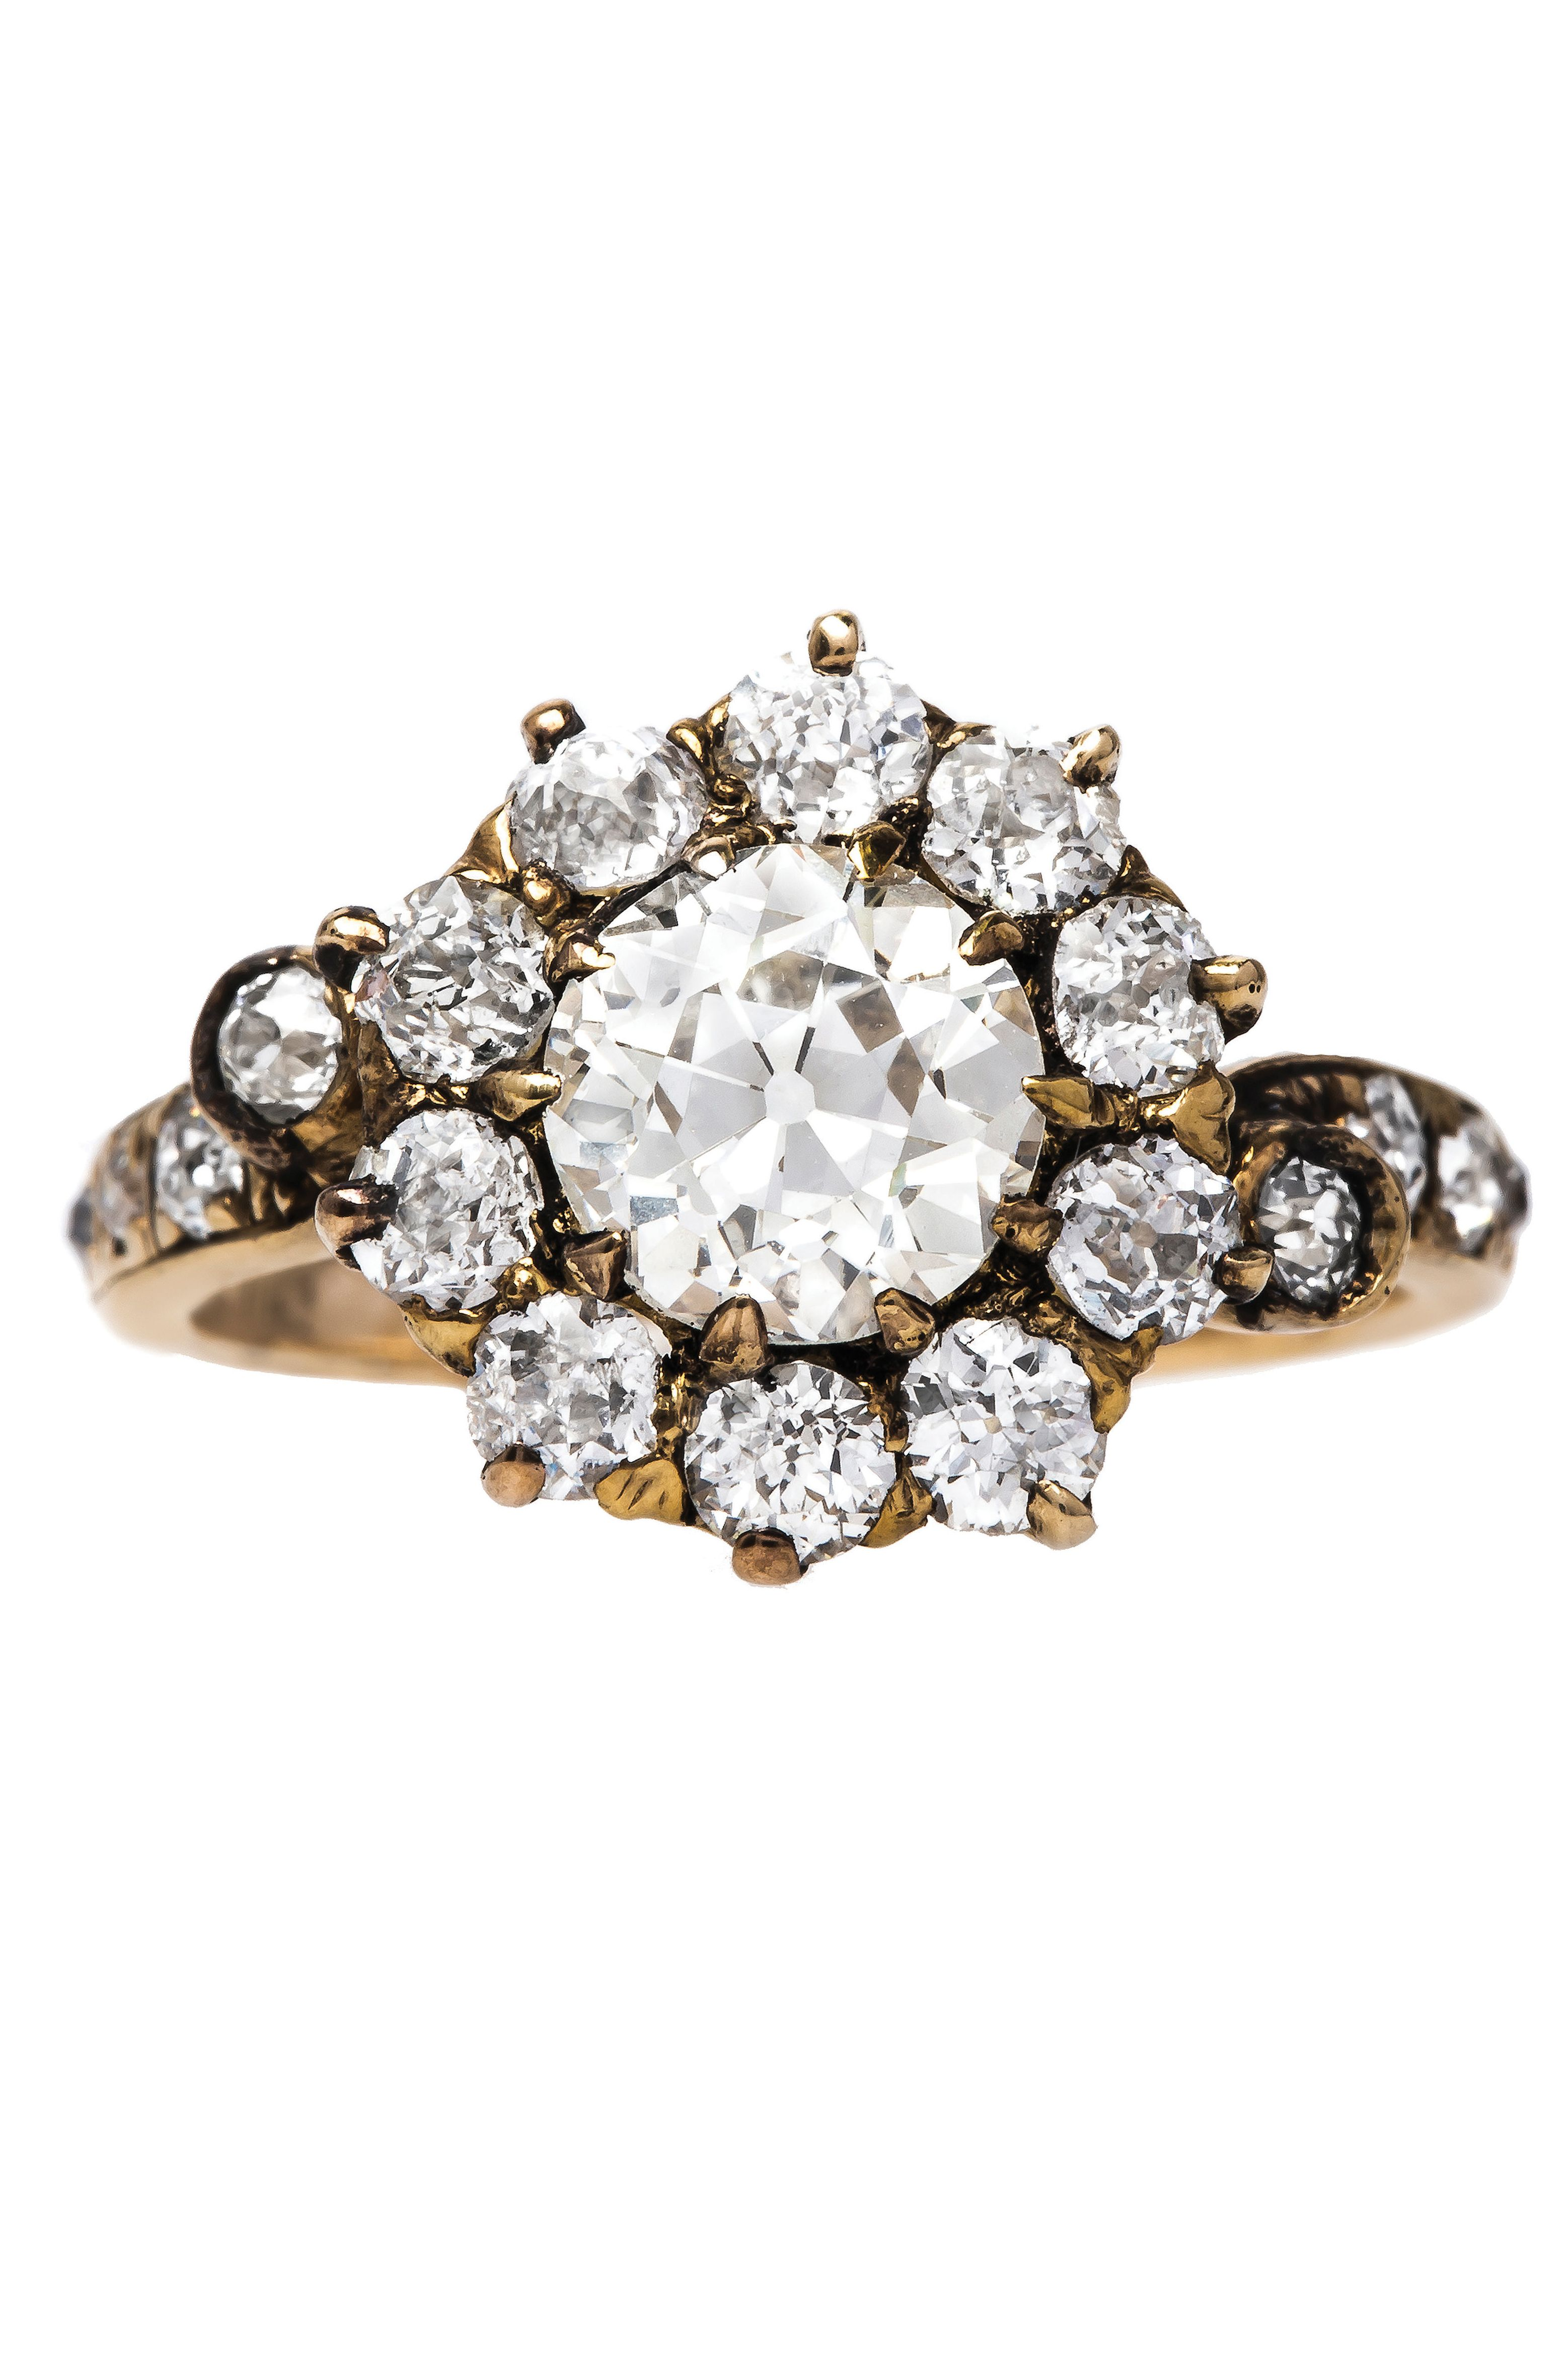 50 Vintage Engagement Rings  Antique And Vintageinspired Engagement Rings